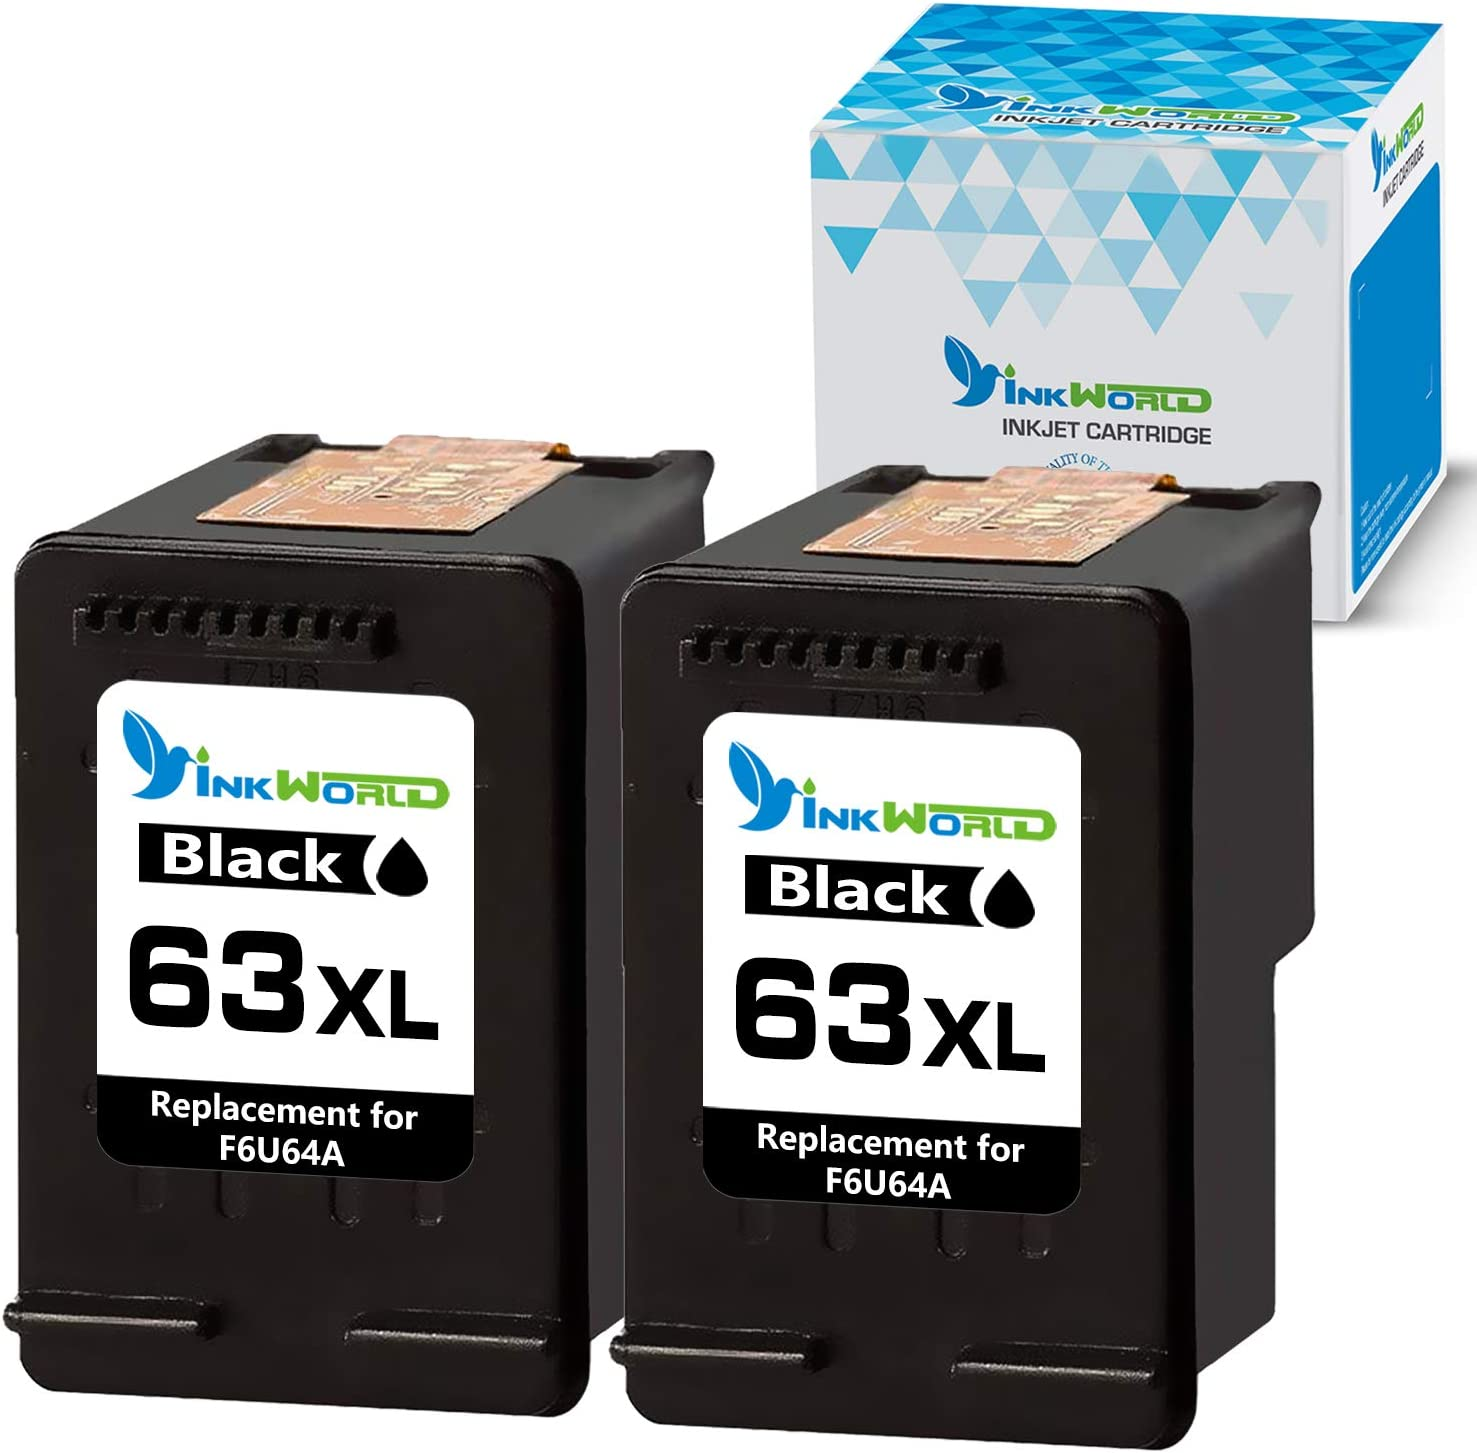 InkWorld Remanufactured Ink Cartridge Replacement for HP 63XL 63 XL to Use with Envy 4520 3634 OfficeJet 3830 5252 4650 5258 4655 4652 5255 DeskJet 3636 1111 3630 1112 3637 3632 Printer (2 Black)